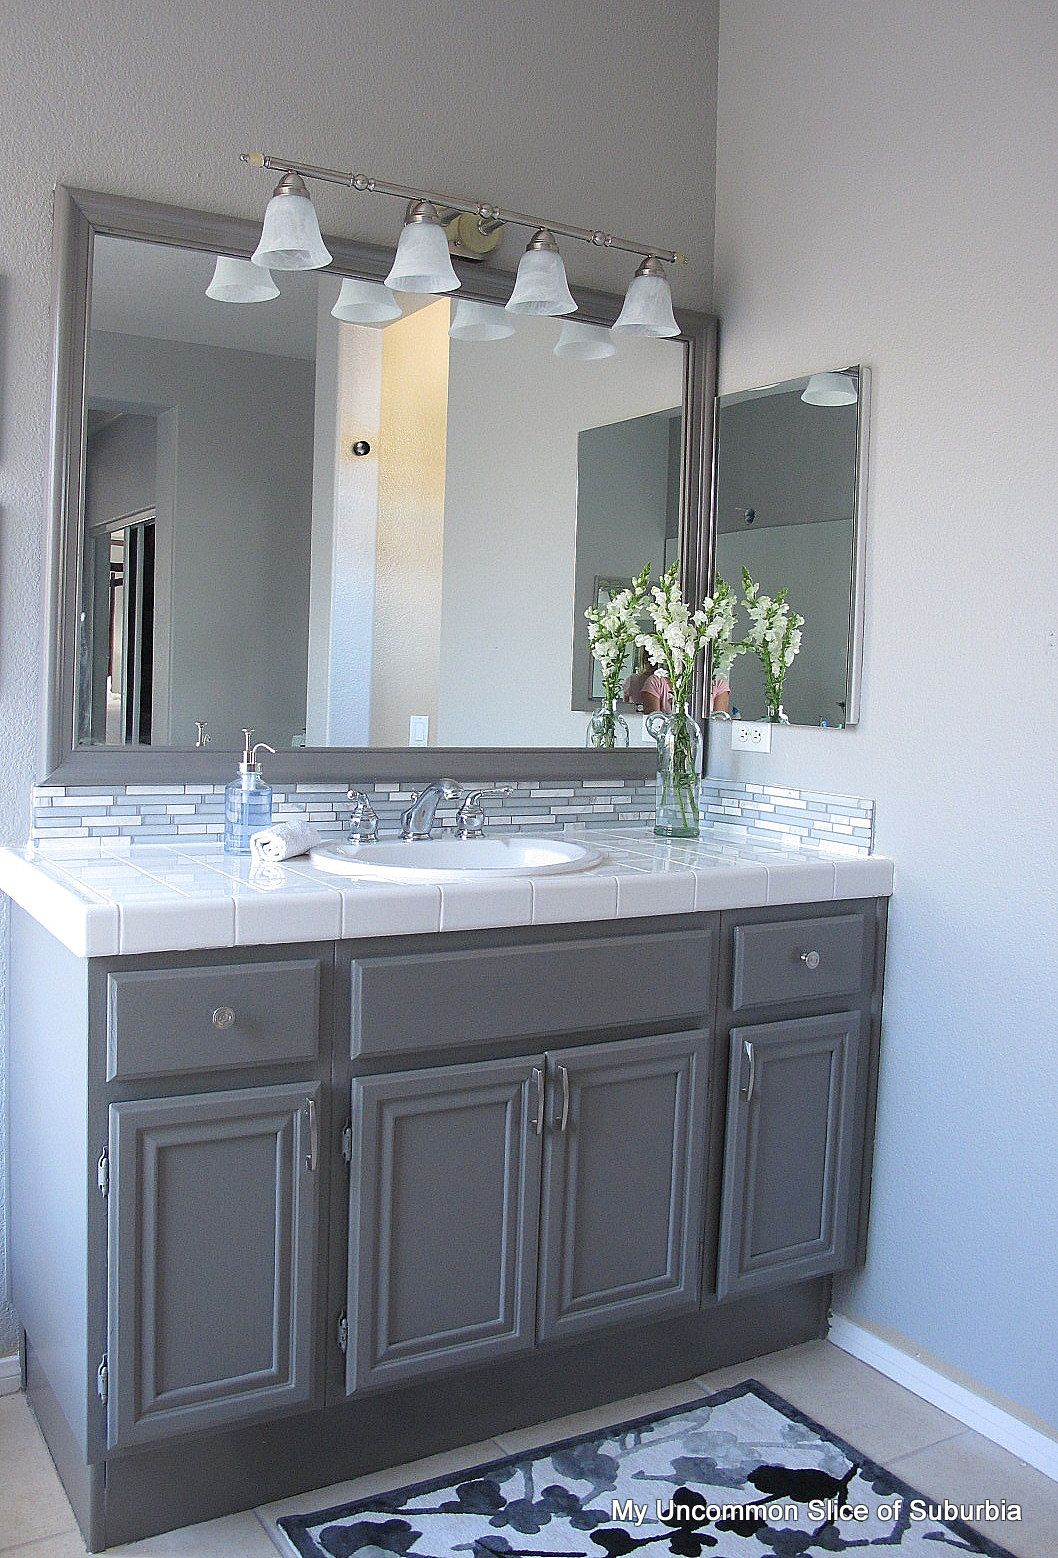 Bathroom Cabinet Color Ideas how to paint oak cabinets | painted oak cabinets, painted bathroom